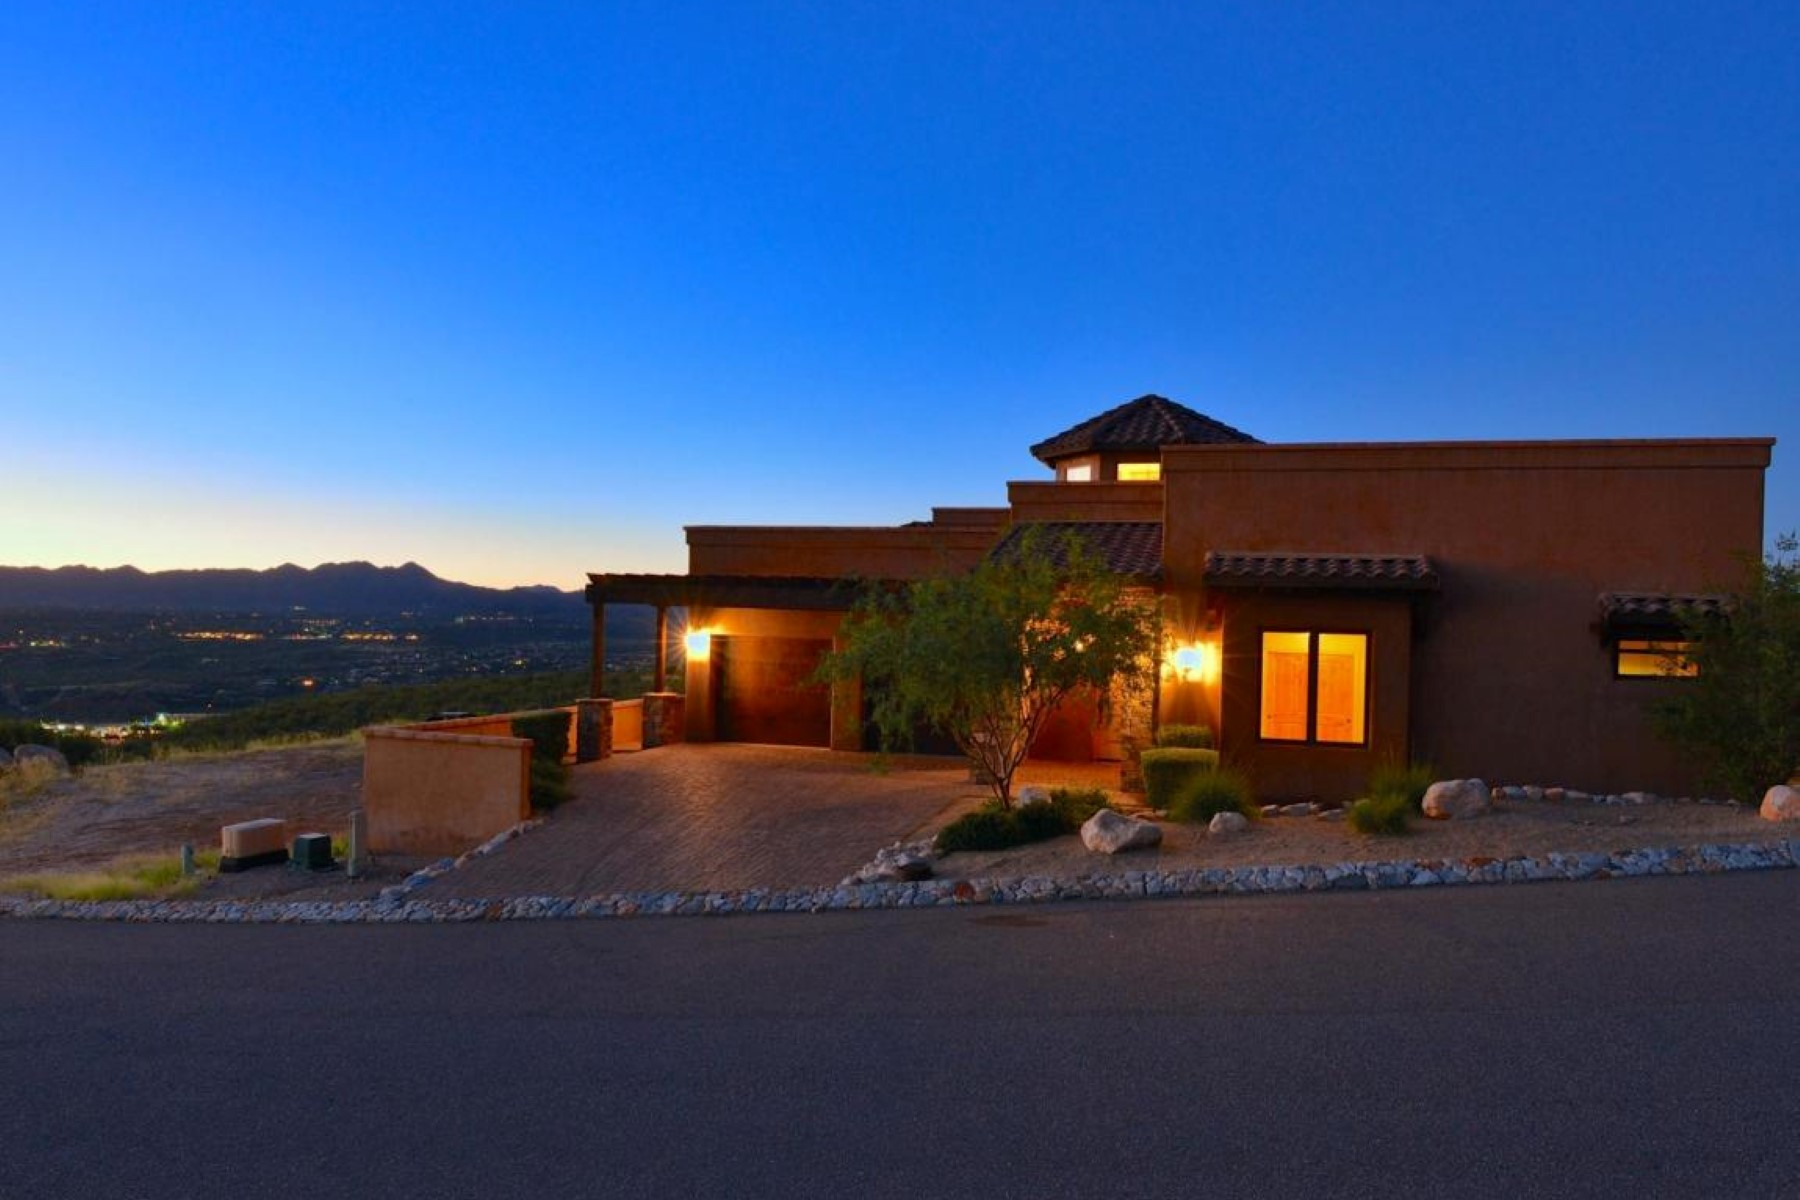 Single Family Home for Sale at Well Appointed Classic Mediterranean Style Home Resting on a High Private Mesa 2551 E Della Roccia Court Oro Valley, Arizona 85737 United States